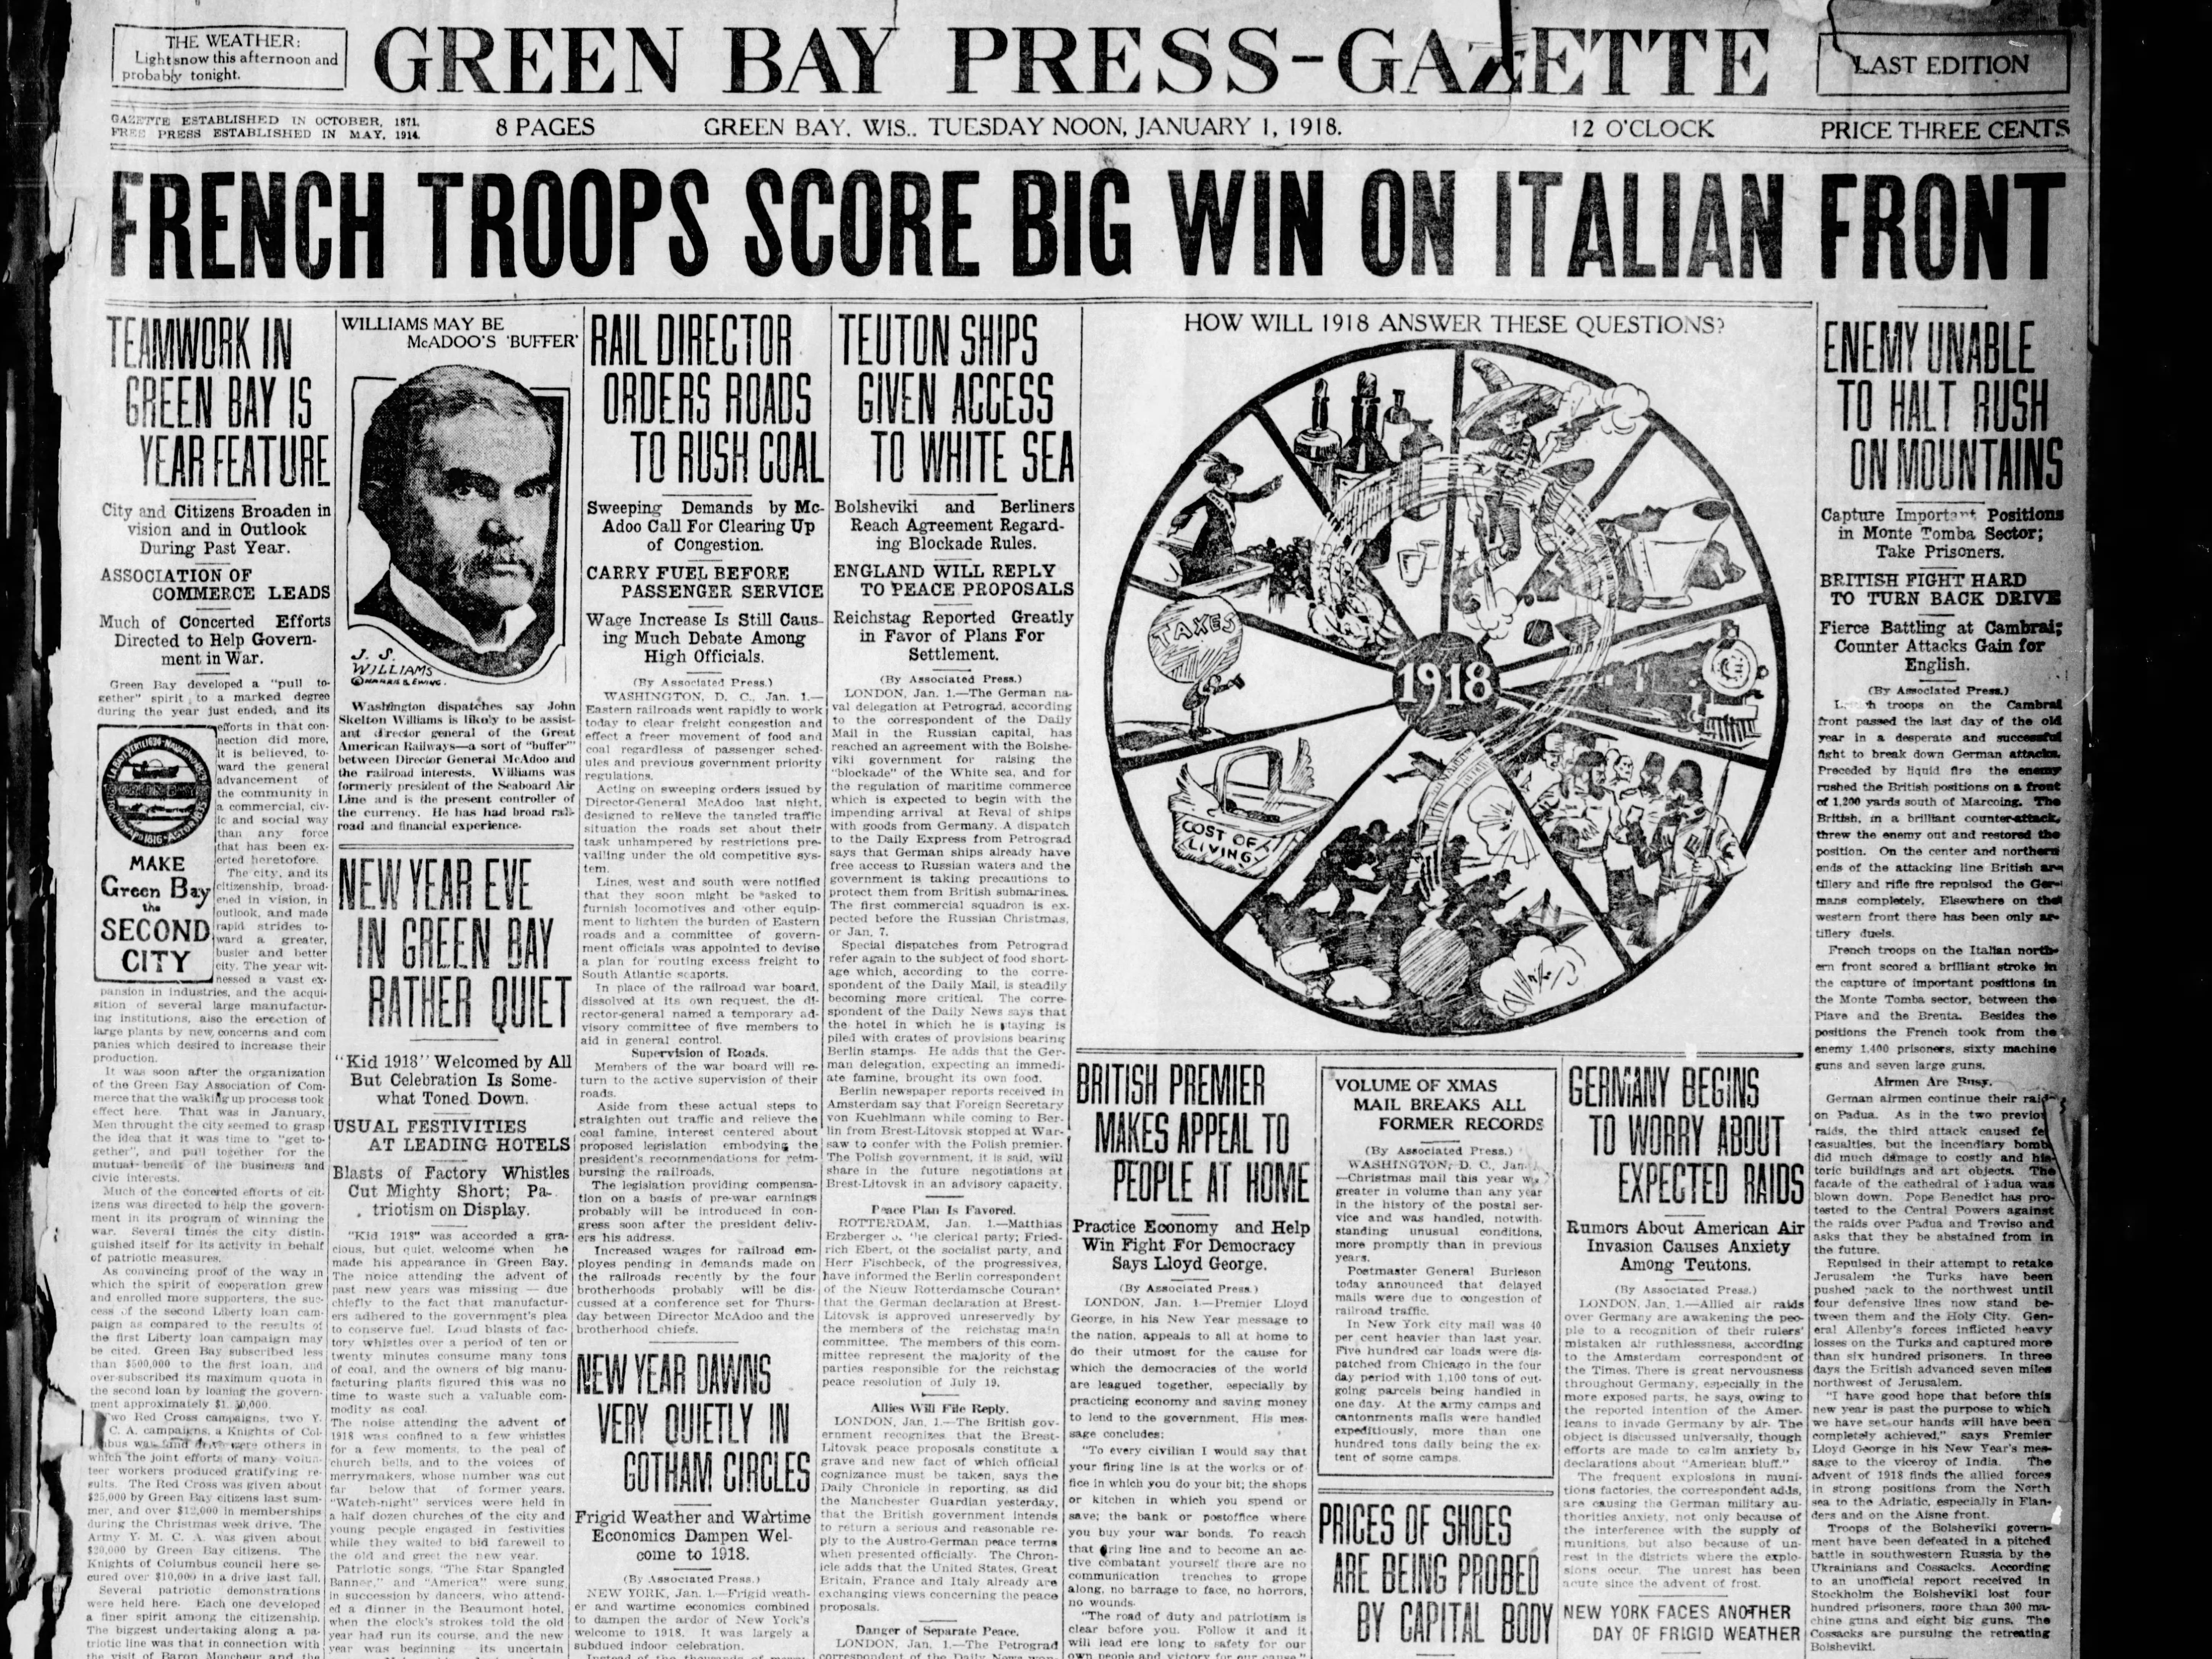 Today in History: Jan. 1, 1918